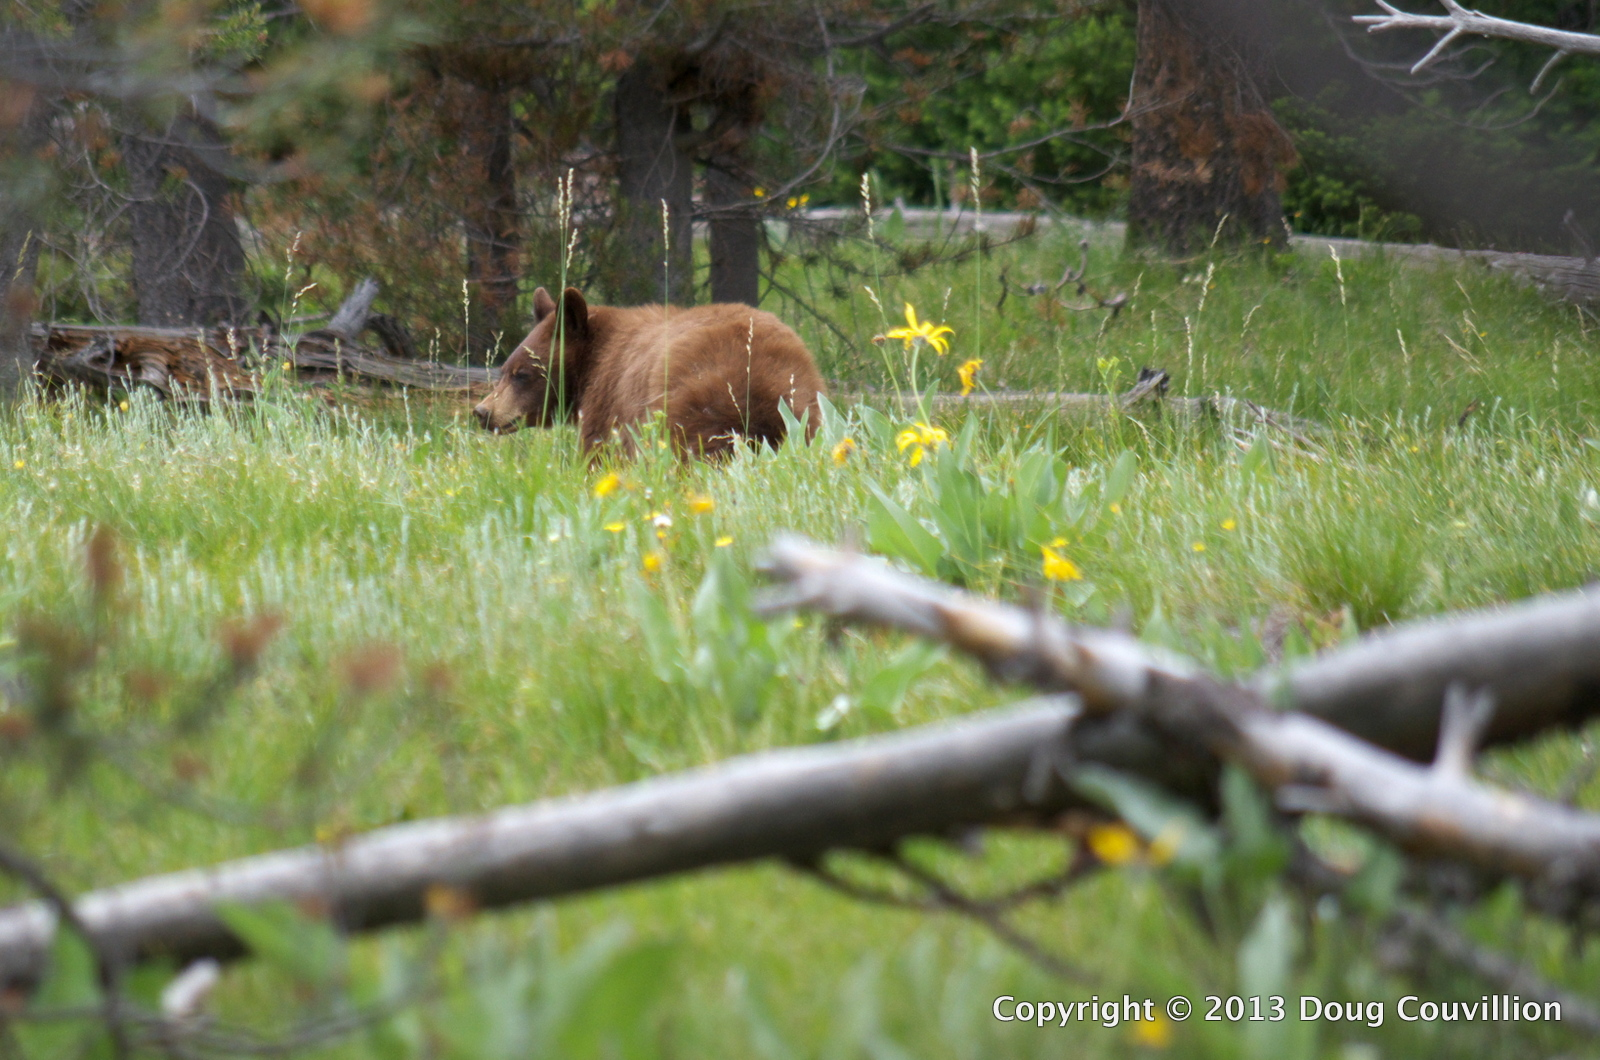 photograph of a black bear in a meadow